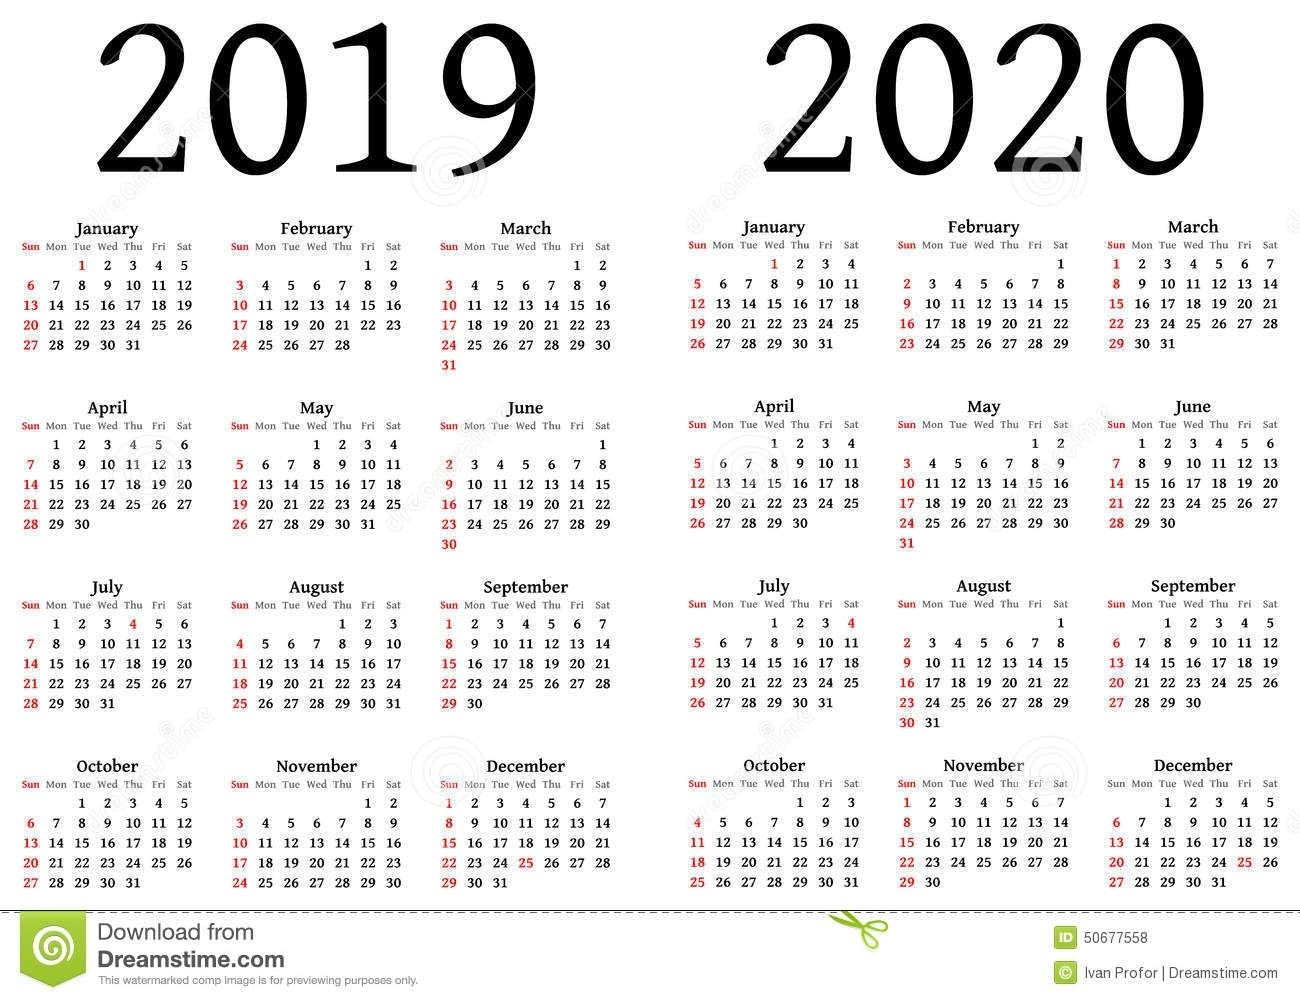 Printable Calendar For 2019 And 2020 | Printable Calendar 2019 with regard to Pocket Printable 2019-2020 Calendar Free